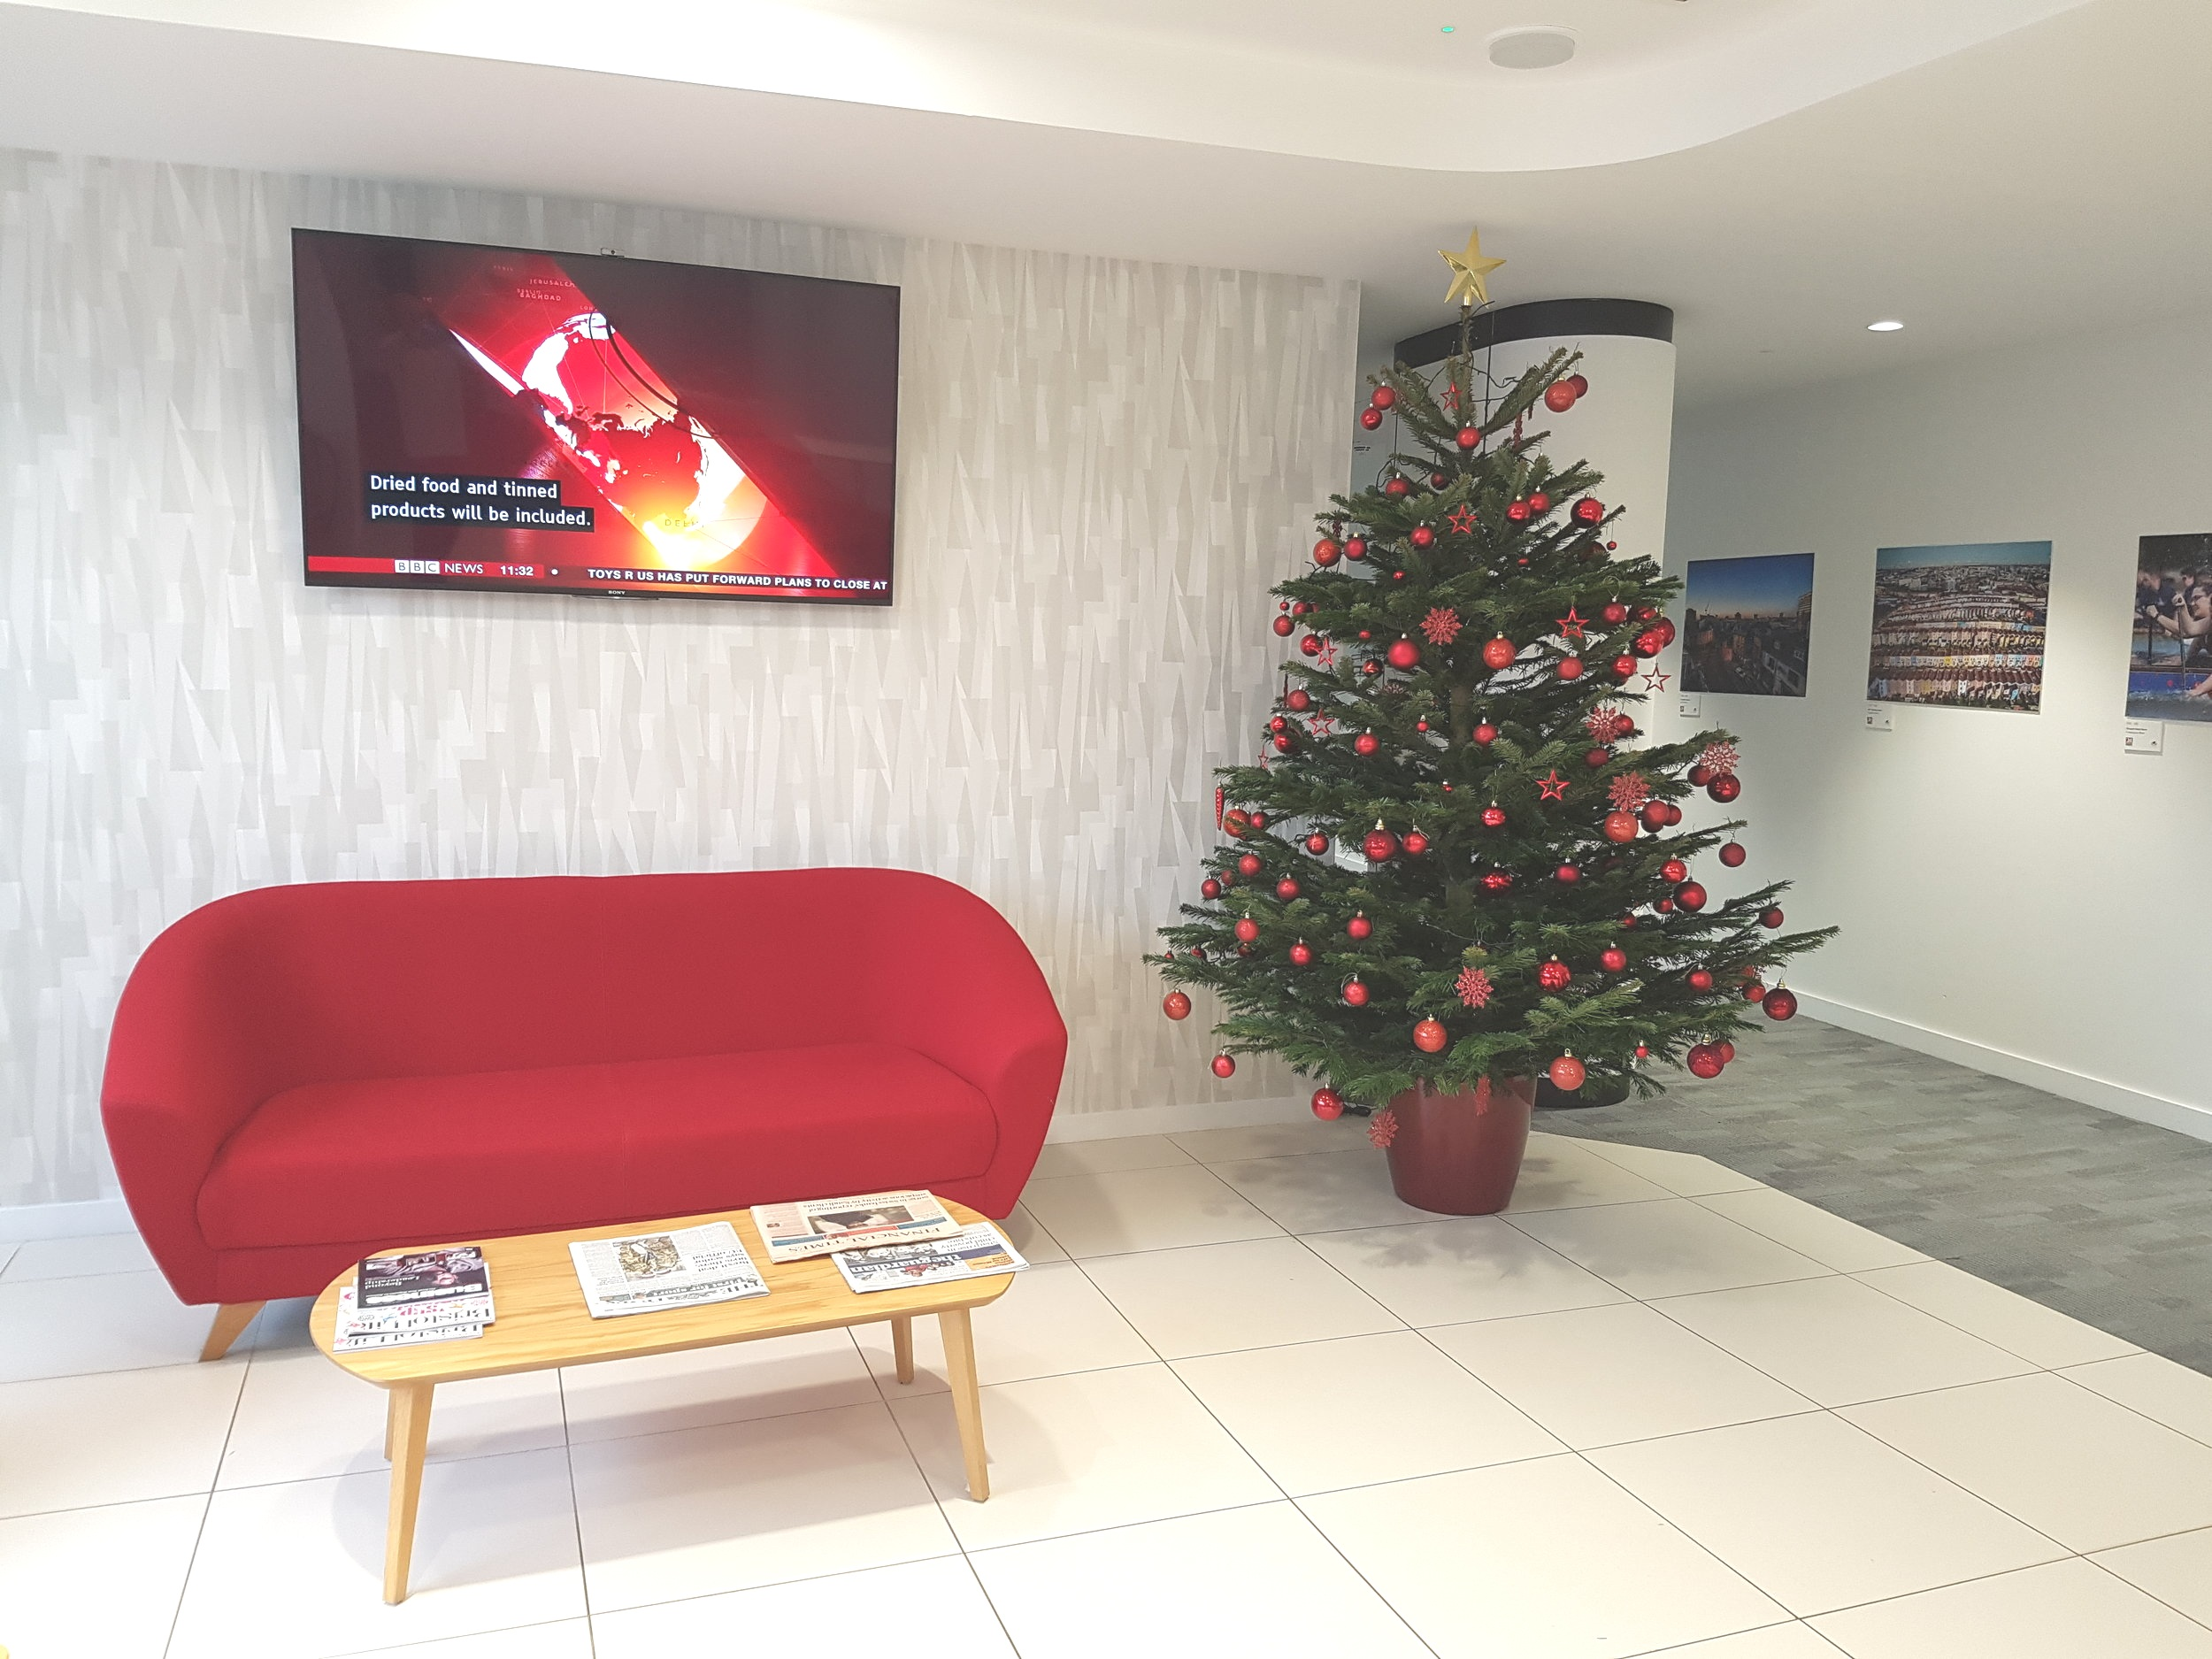 Christmas trees hire - Let us bring a bit of festivities to your working space. Hassle free Christmas for you and your colleagues, we will take care of putting your tree and will recycle it in January.